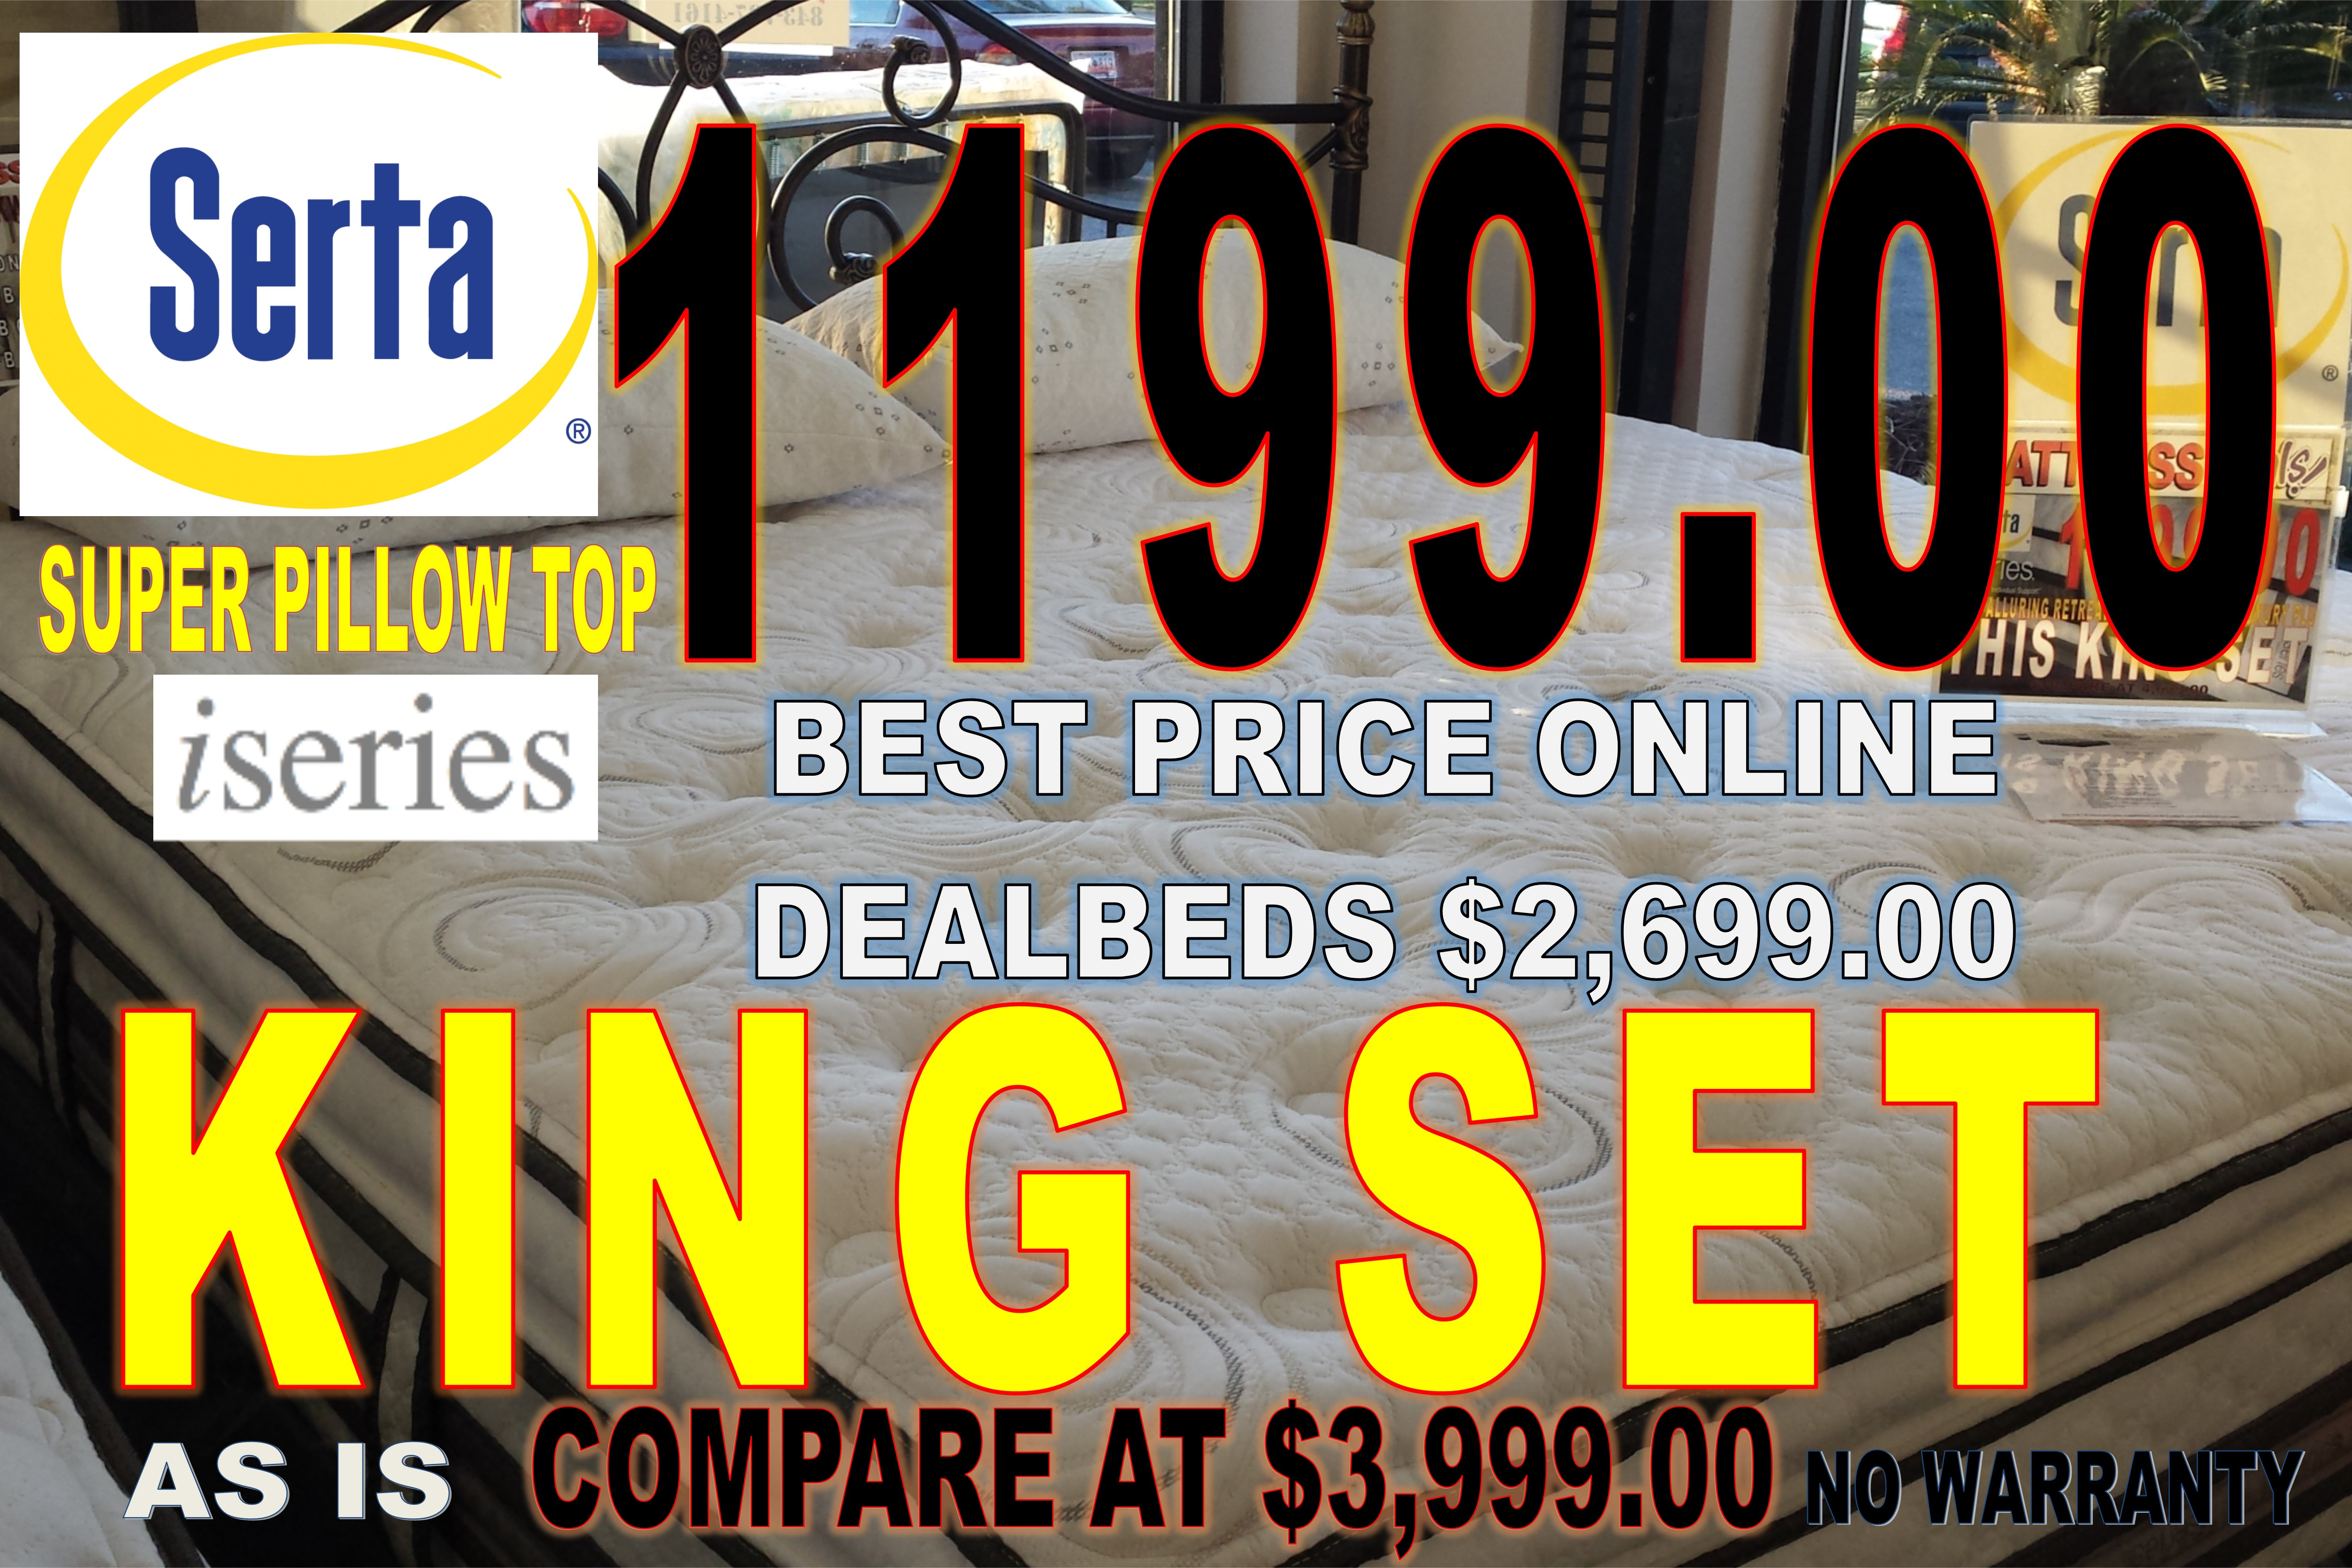 Mattress Deals image 46